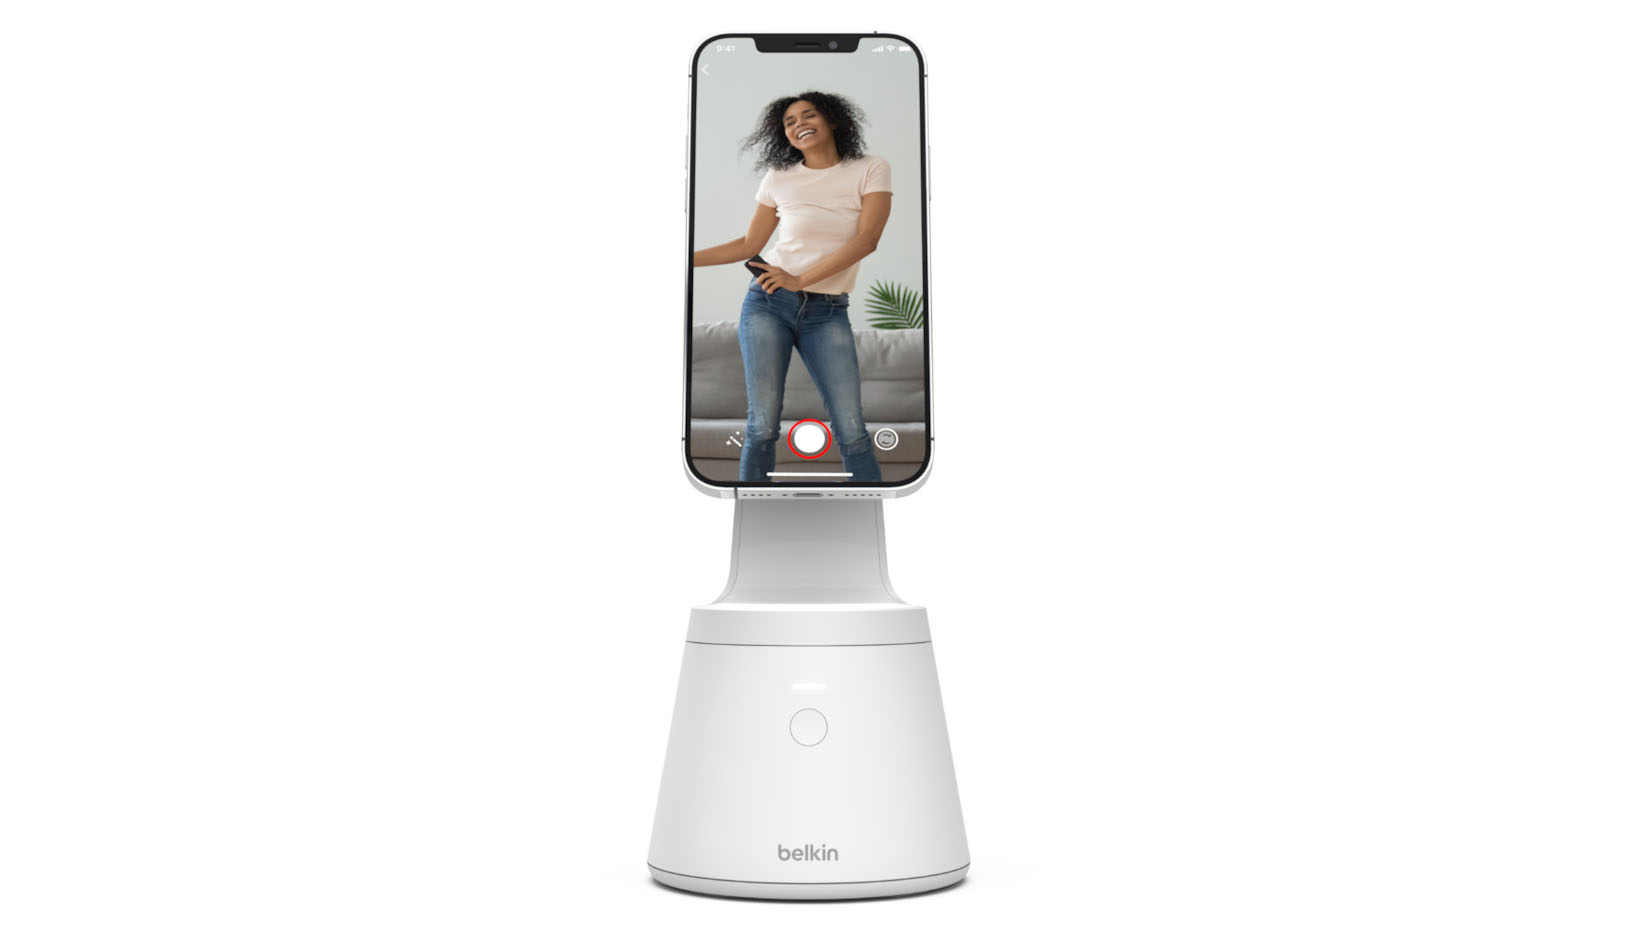 Magnetic Phone Belkin Mount with Face Tracking